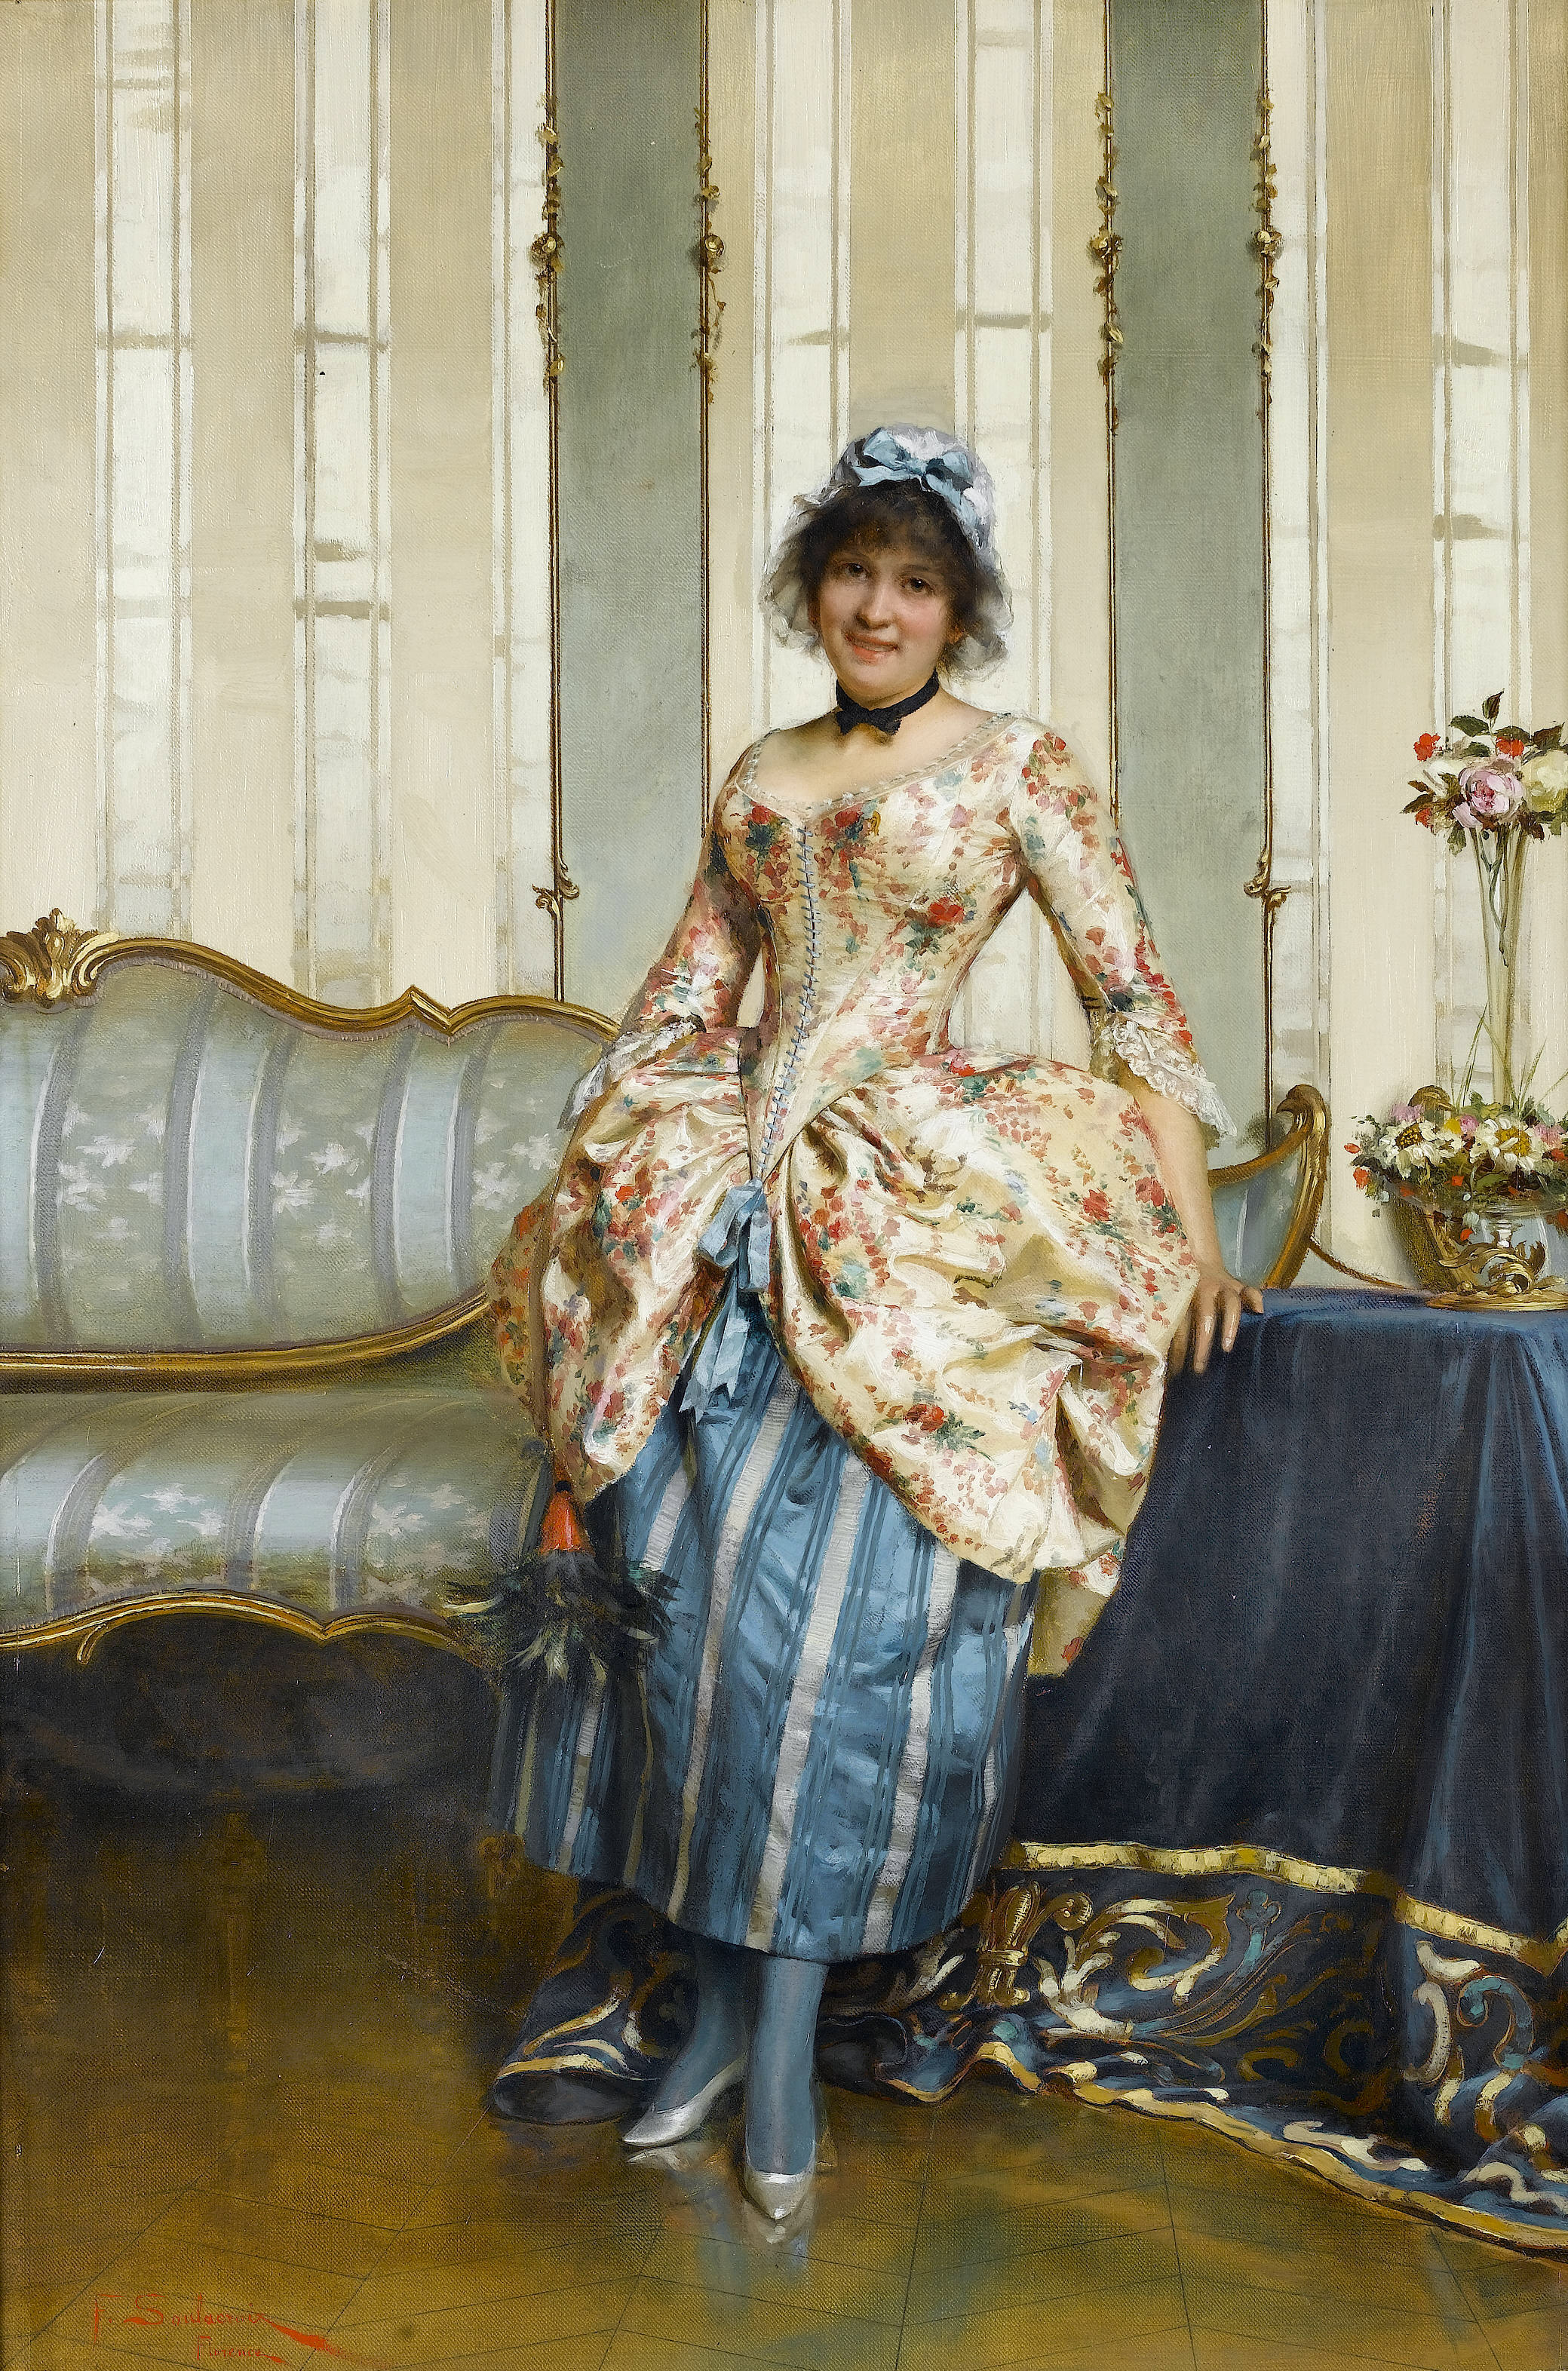 https://i0.wp.com/upload.wikimedia.org/wikipedia/commons/0/04/Fr%C3%A9d%C3%A9ric_Soulacroix_An_elegant_maid.jpg